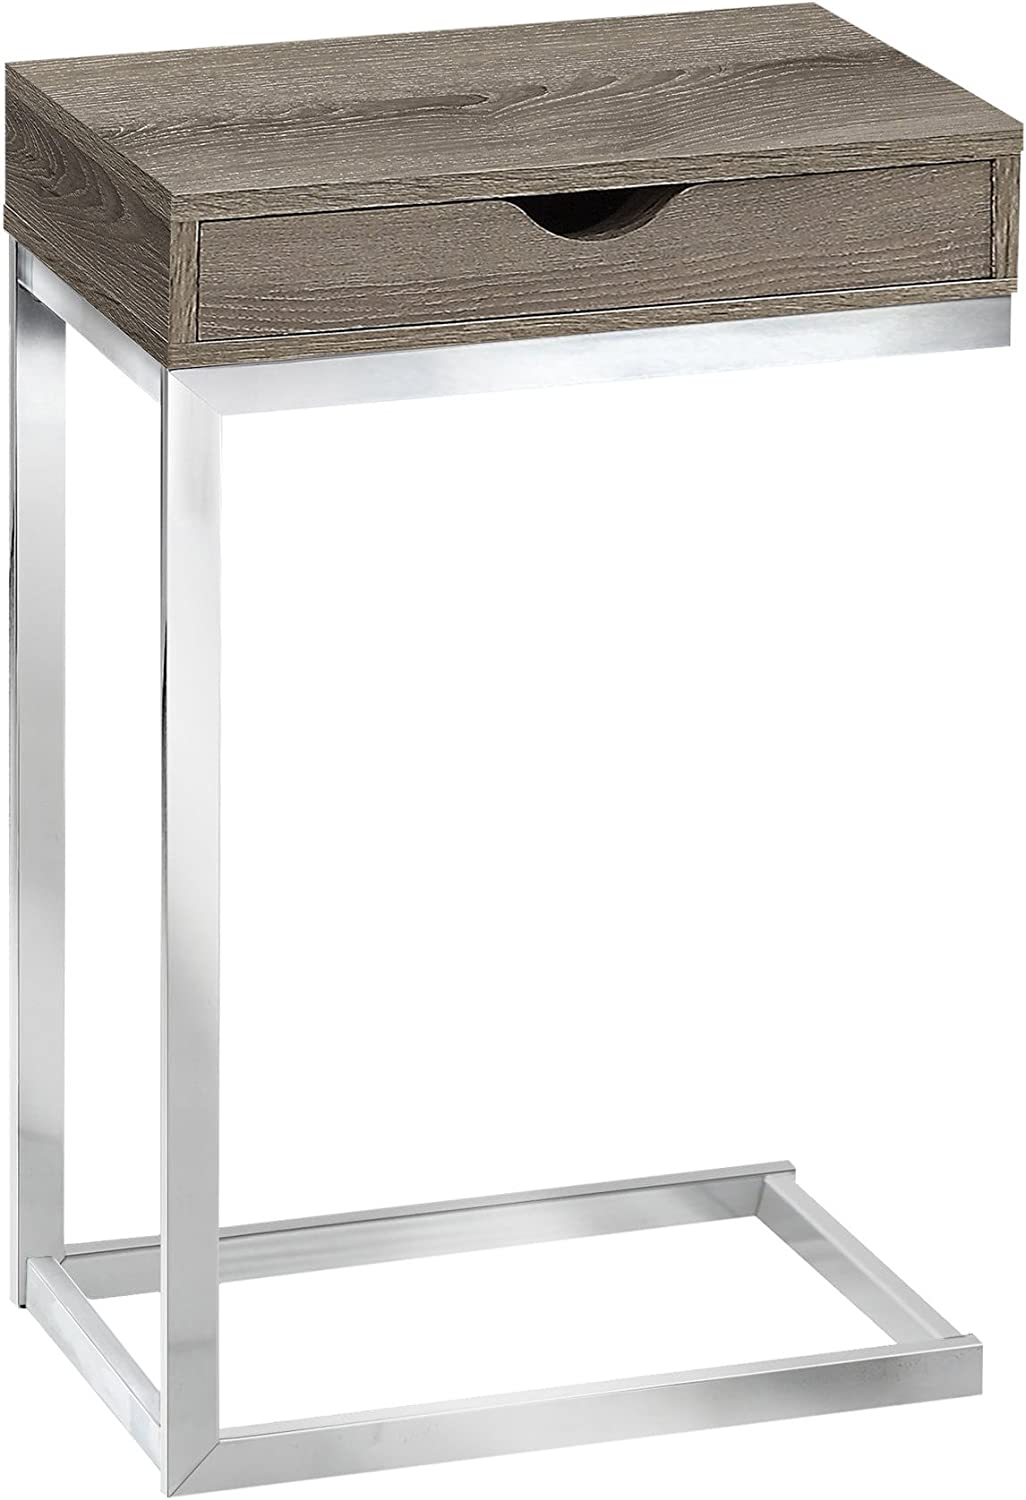 Monarch Specialties Reclaimed-Look Chrome Metal Accent Table, 19.75-Inch, Dark Taupe